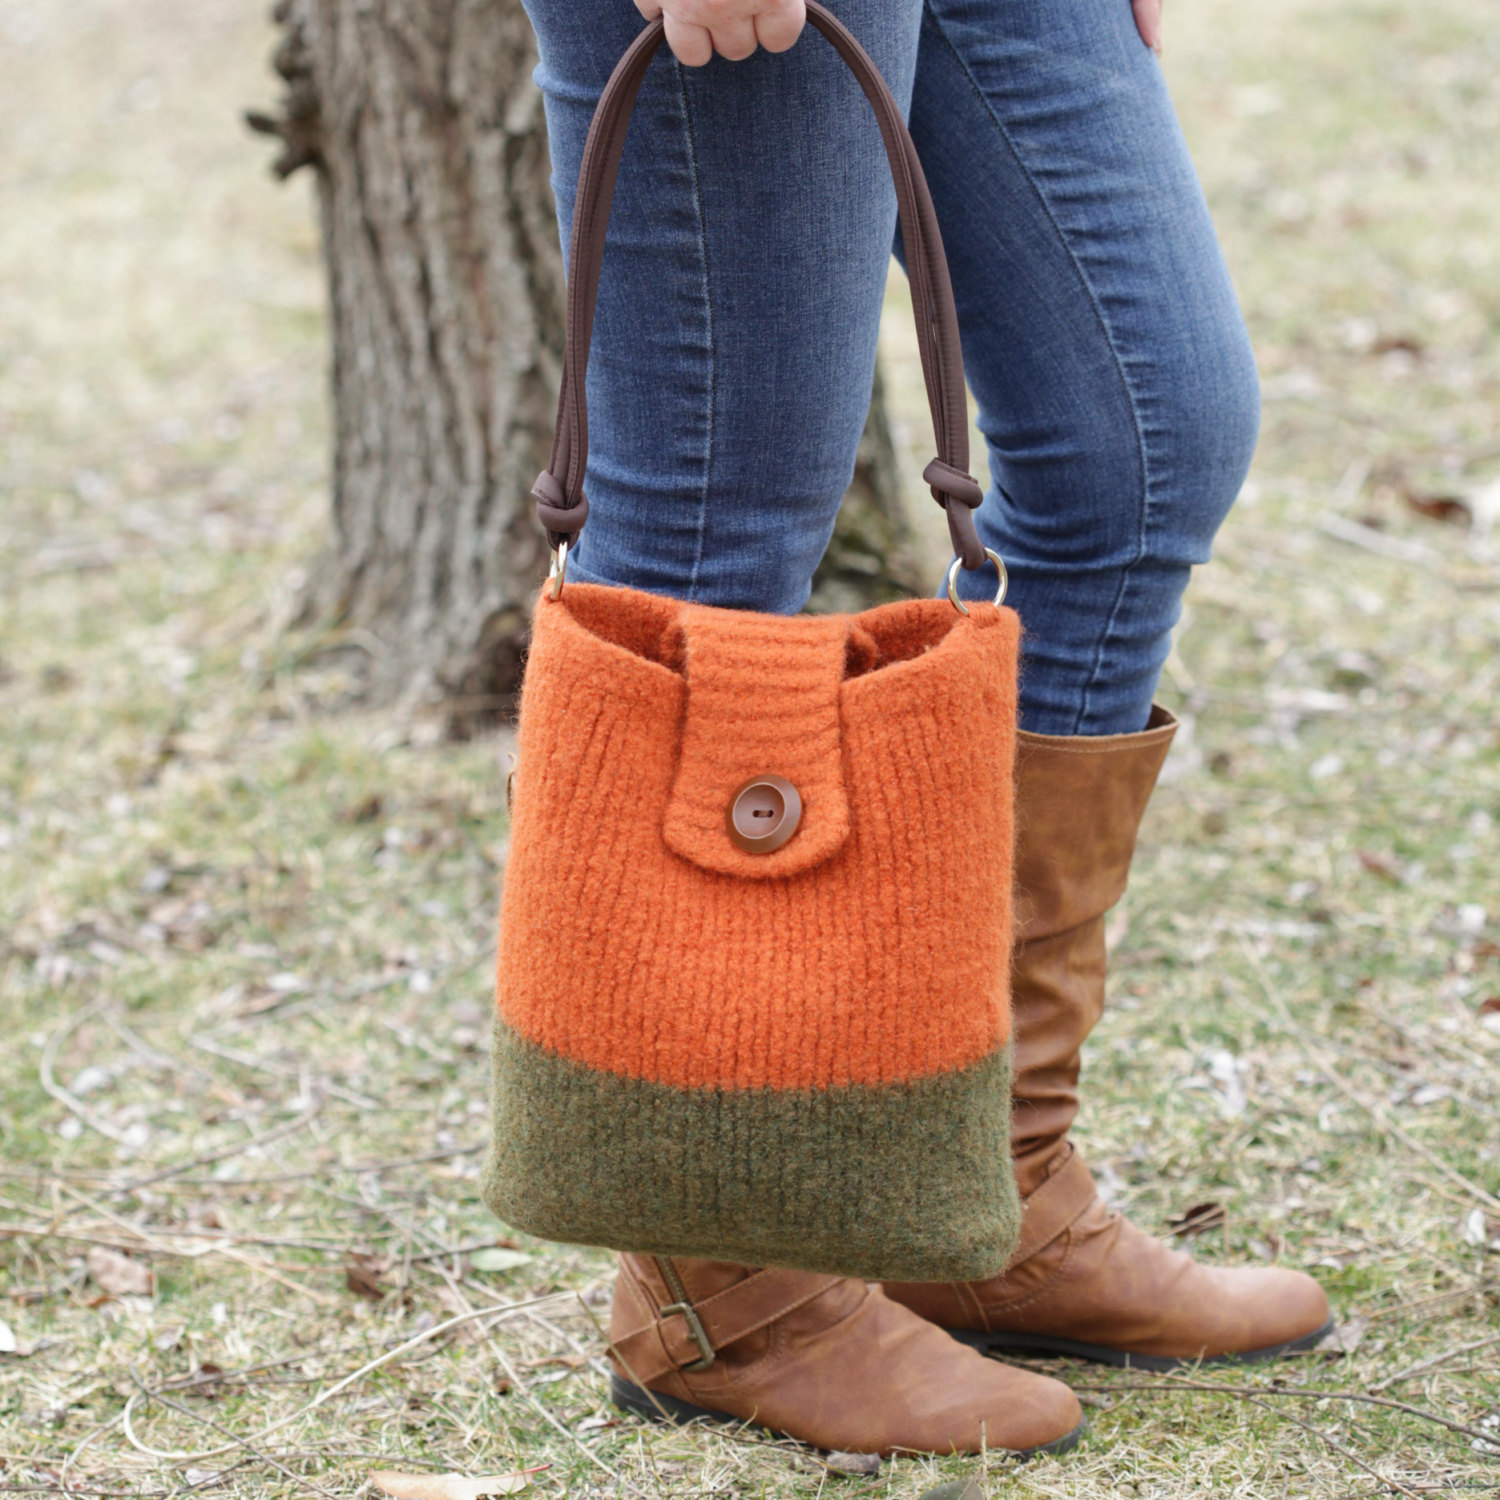 Felted Tote Bag Knit Pattern - Camera Shoulder Bag